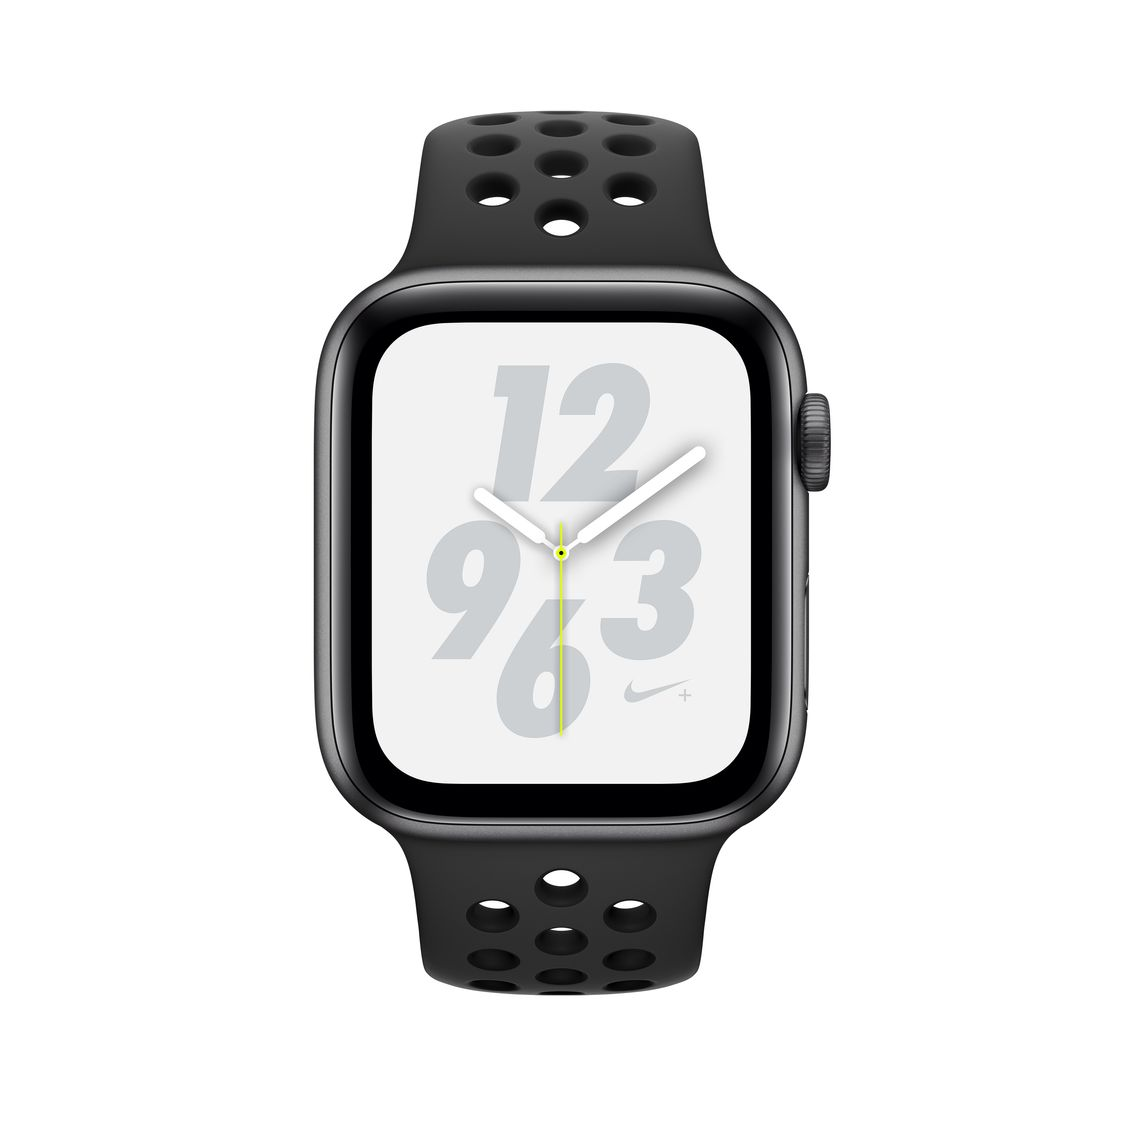 Refurbished Apple Watch Nike+ Series 4 GPS + Cellular, 40mm Space Grey Aluminium Case with AnthraciteBlack Nike Sport Band